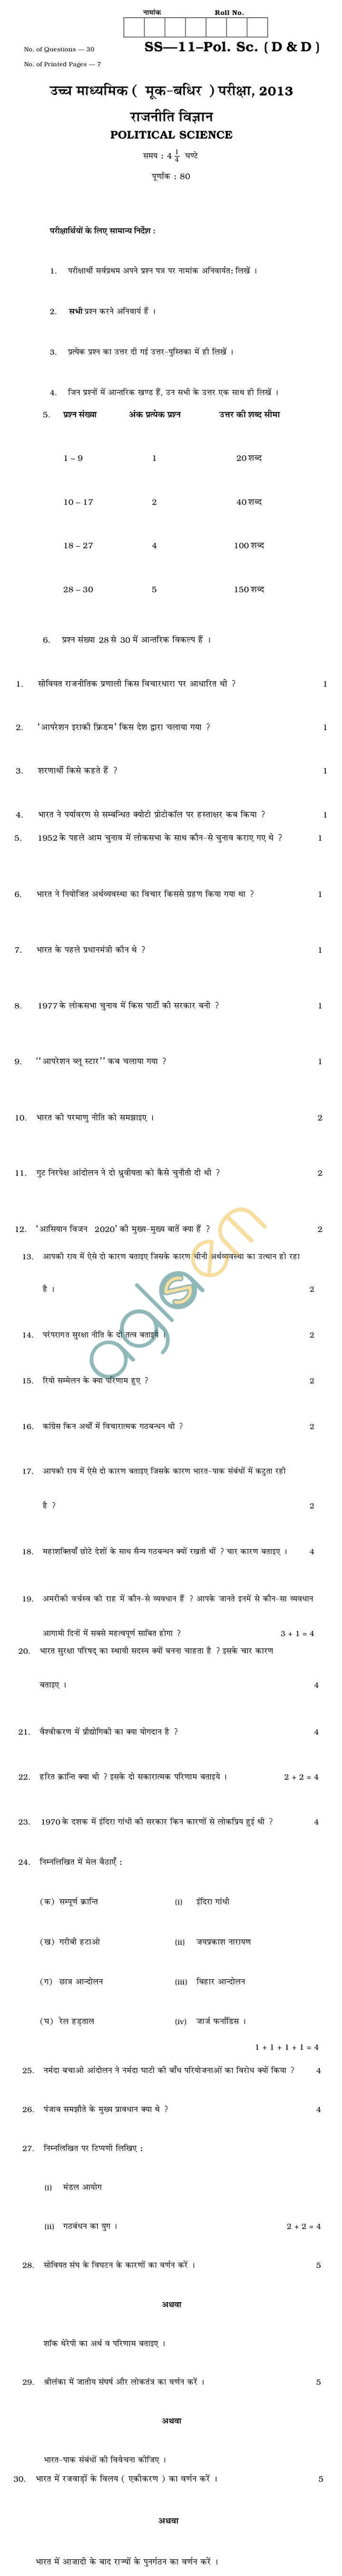 Rajasthan Board Sr. Secondary Pol Science (DD) Question Paper 2013